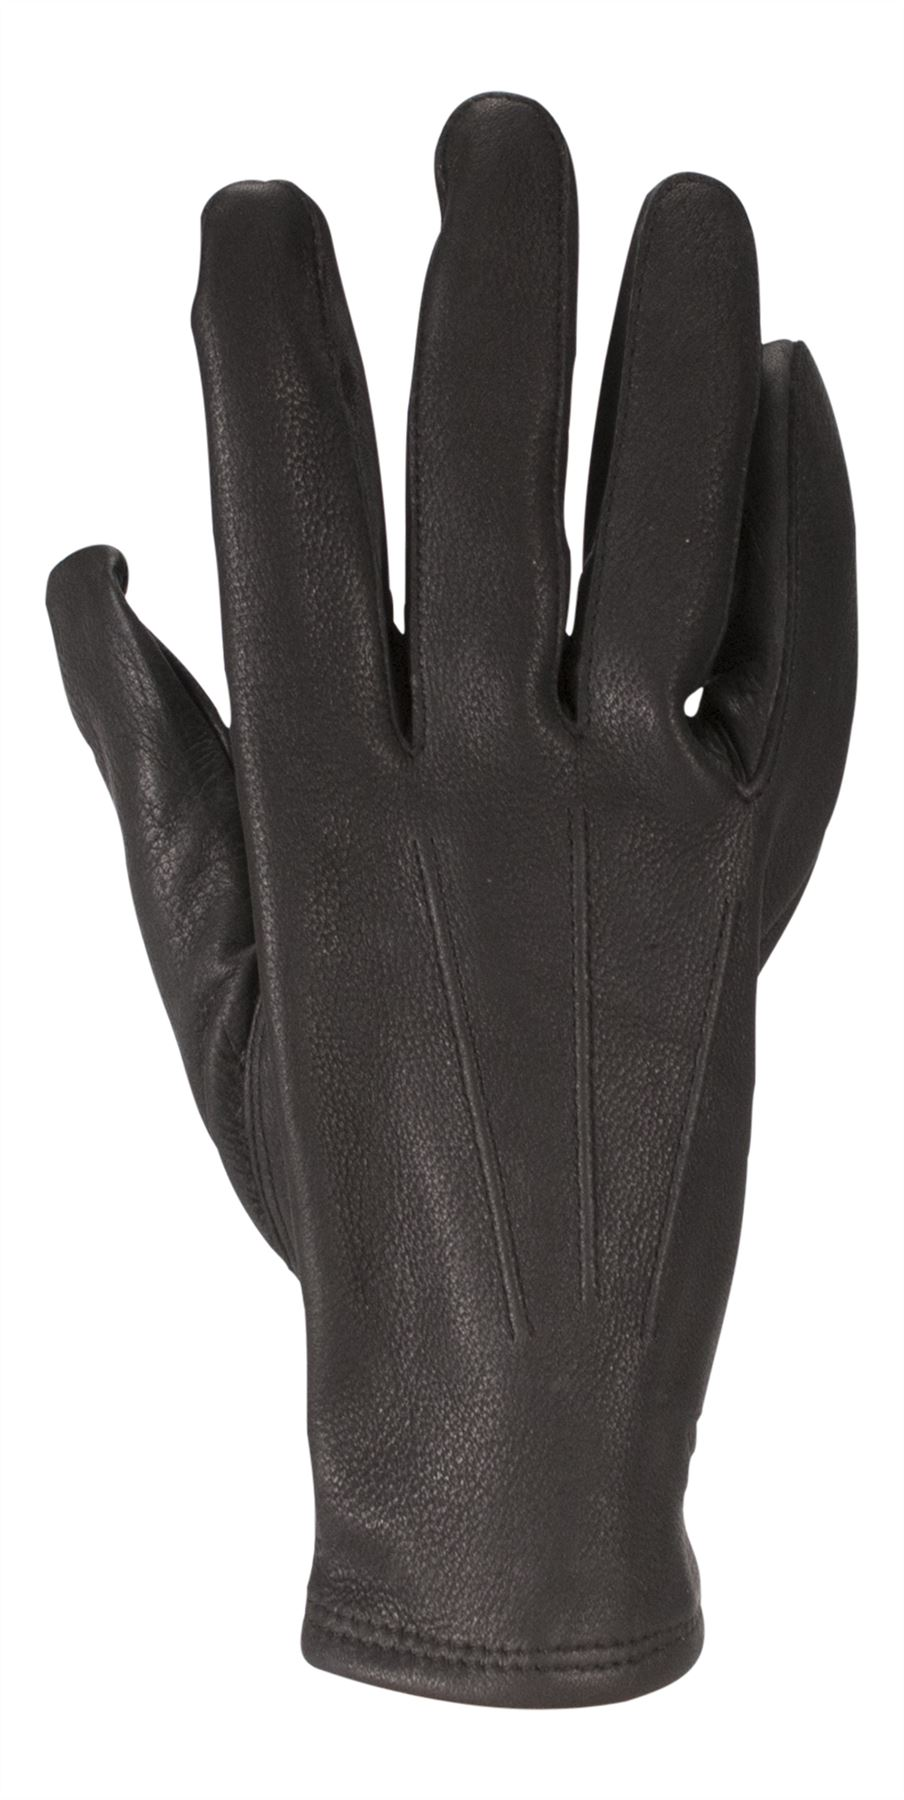 Hestra mens gloves - Hestra Mens Deer Skin Leather Gloves Silk Lined